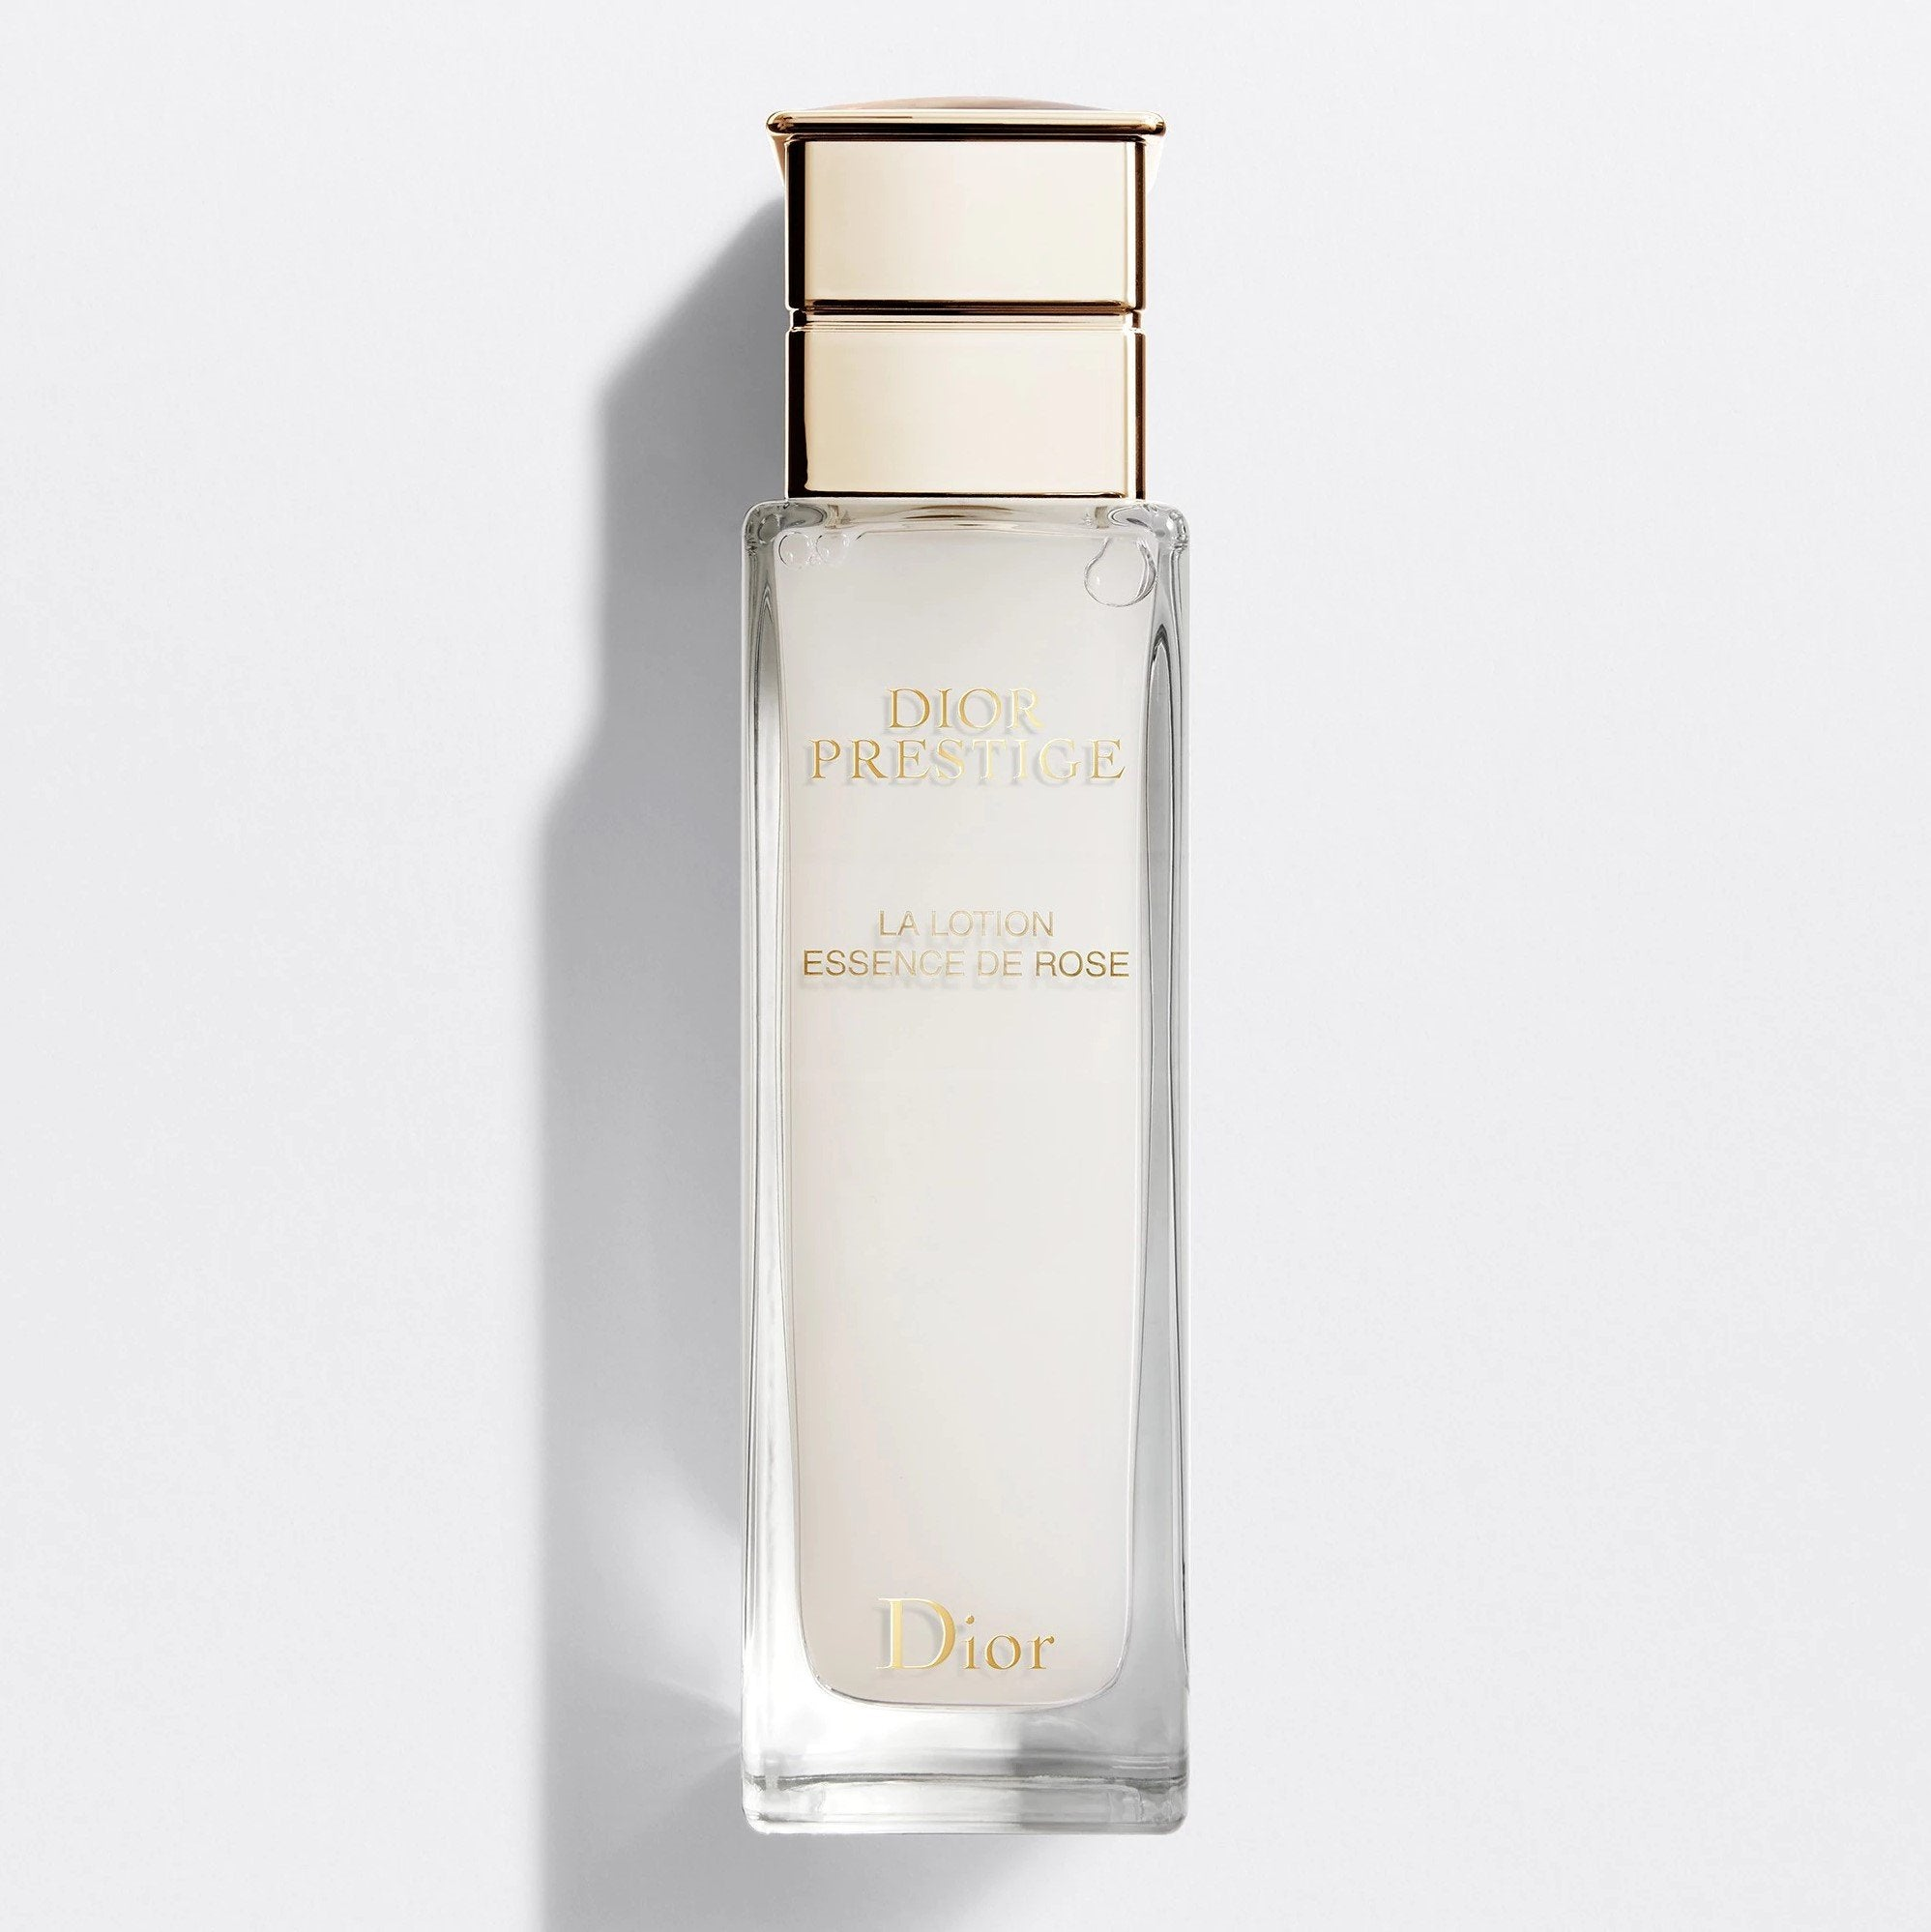 DIOR PRESTIGE ~ La lotion essence de rose